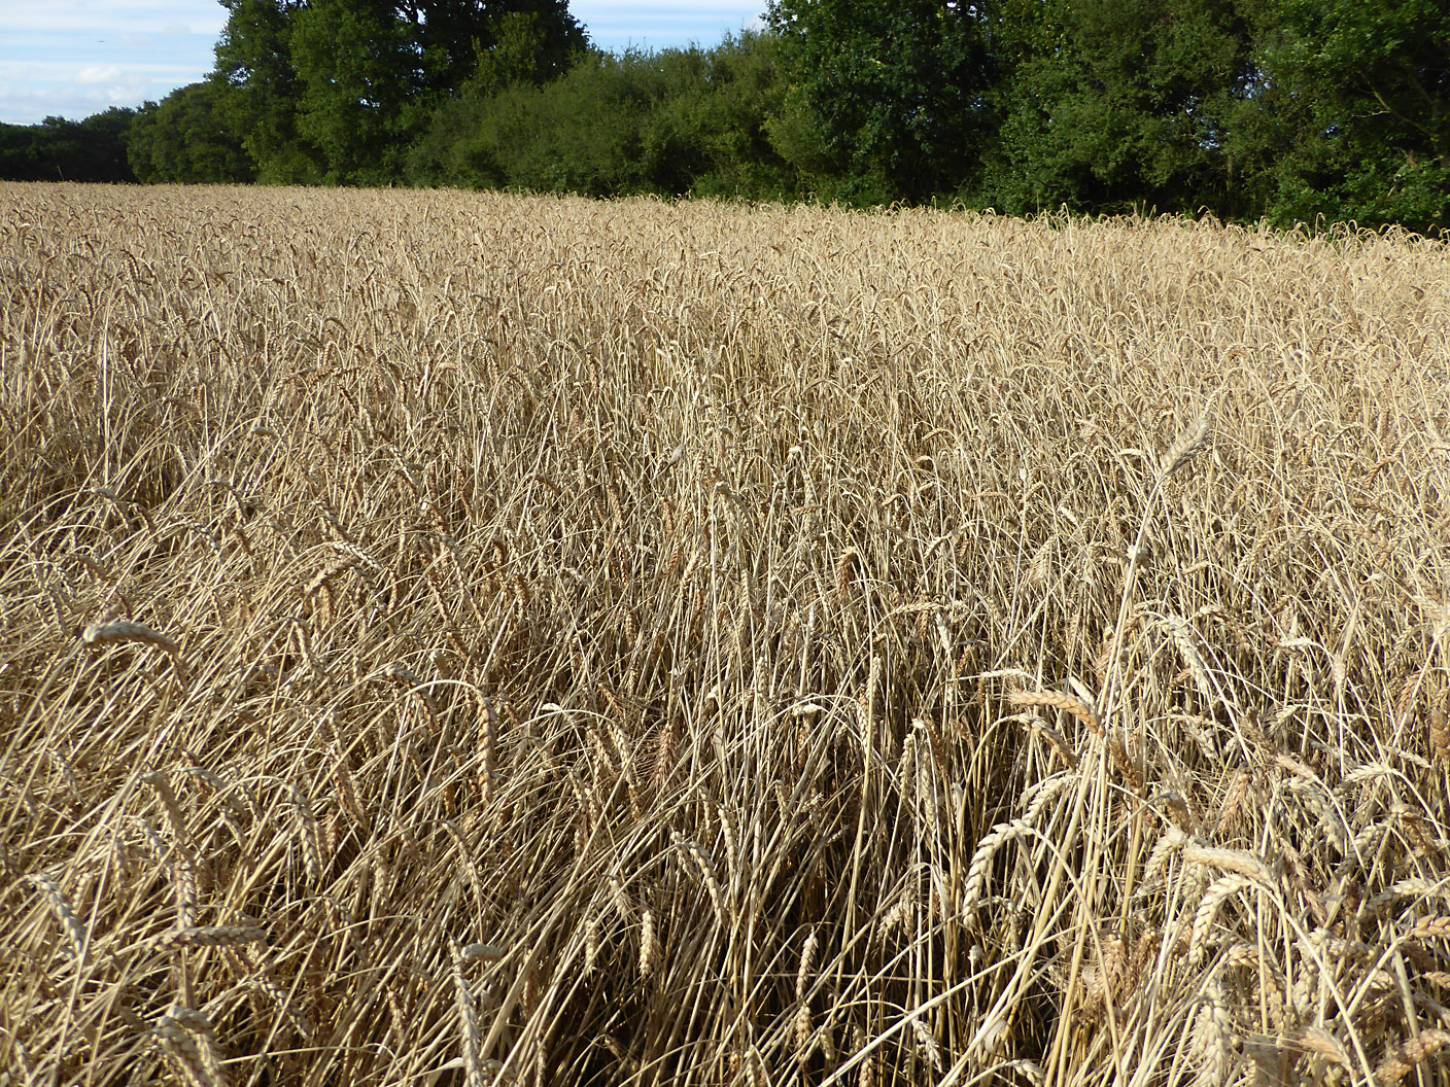 Miller's Choice heritage winter wheat population, farm review pre-harvest '17 - 5:58pm&nbsp;1<sup>st</sup>&nbsp;Aug.&nbsp;'17  <a href='http://maps.google.com/?t=h&q=51.207992,-0.087167&z=18&output=embed' target=_blank><img src='http://www.brockwell-bake.org.uk/img/marker.png' style='border:none;vertical-align:top' height=16px></a>